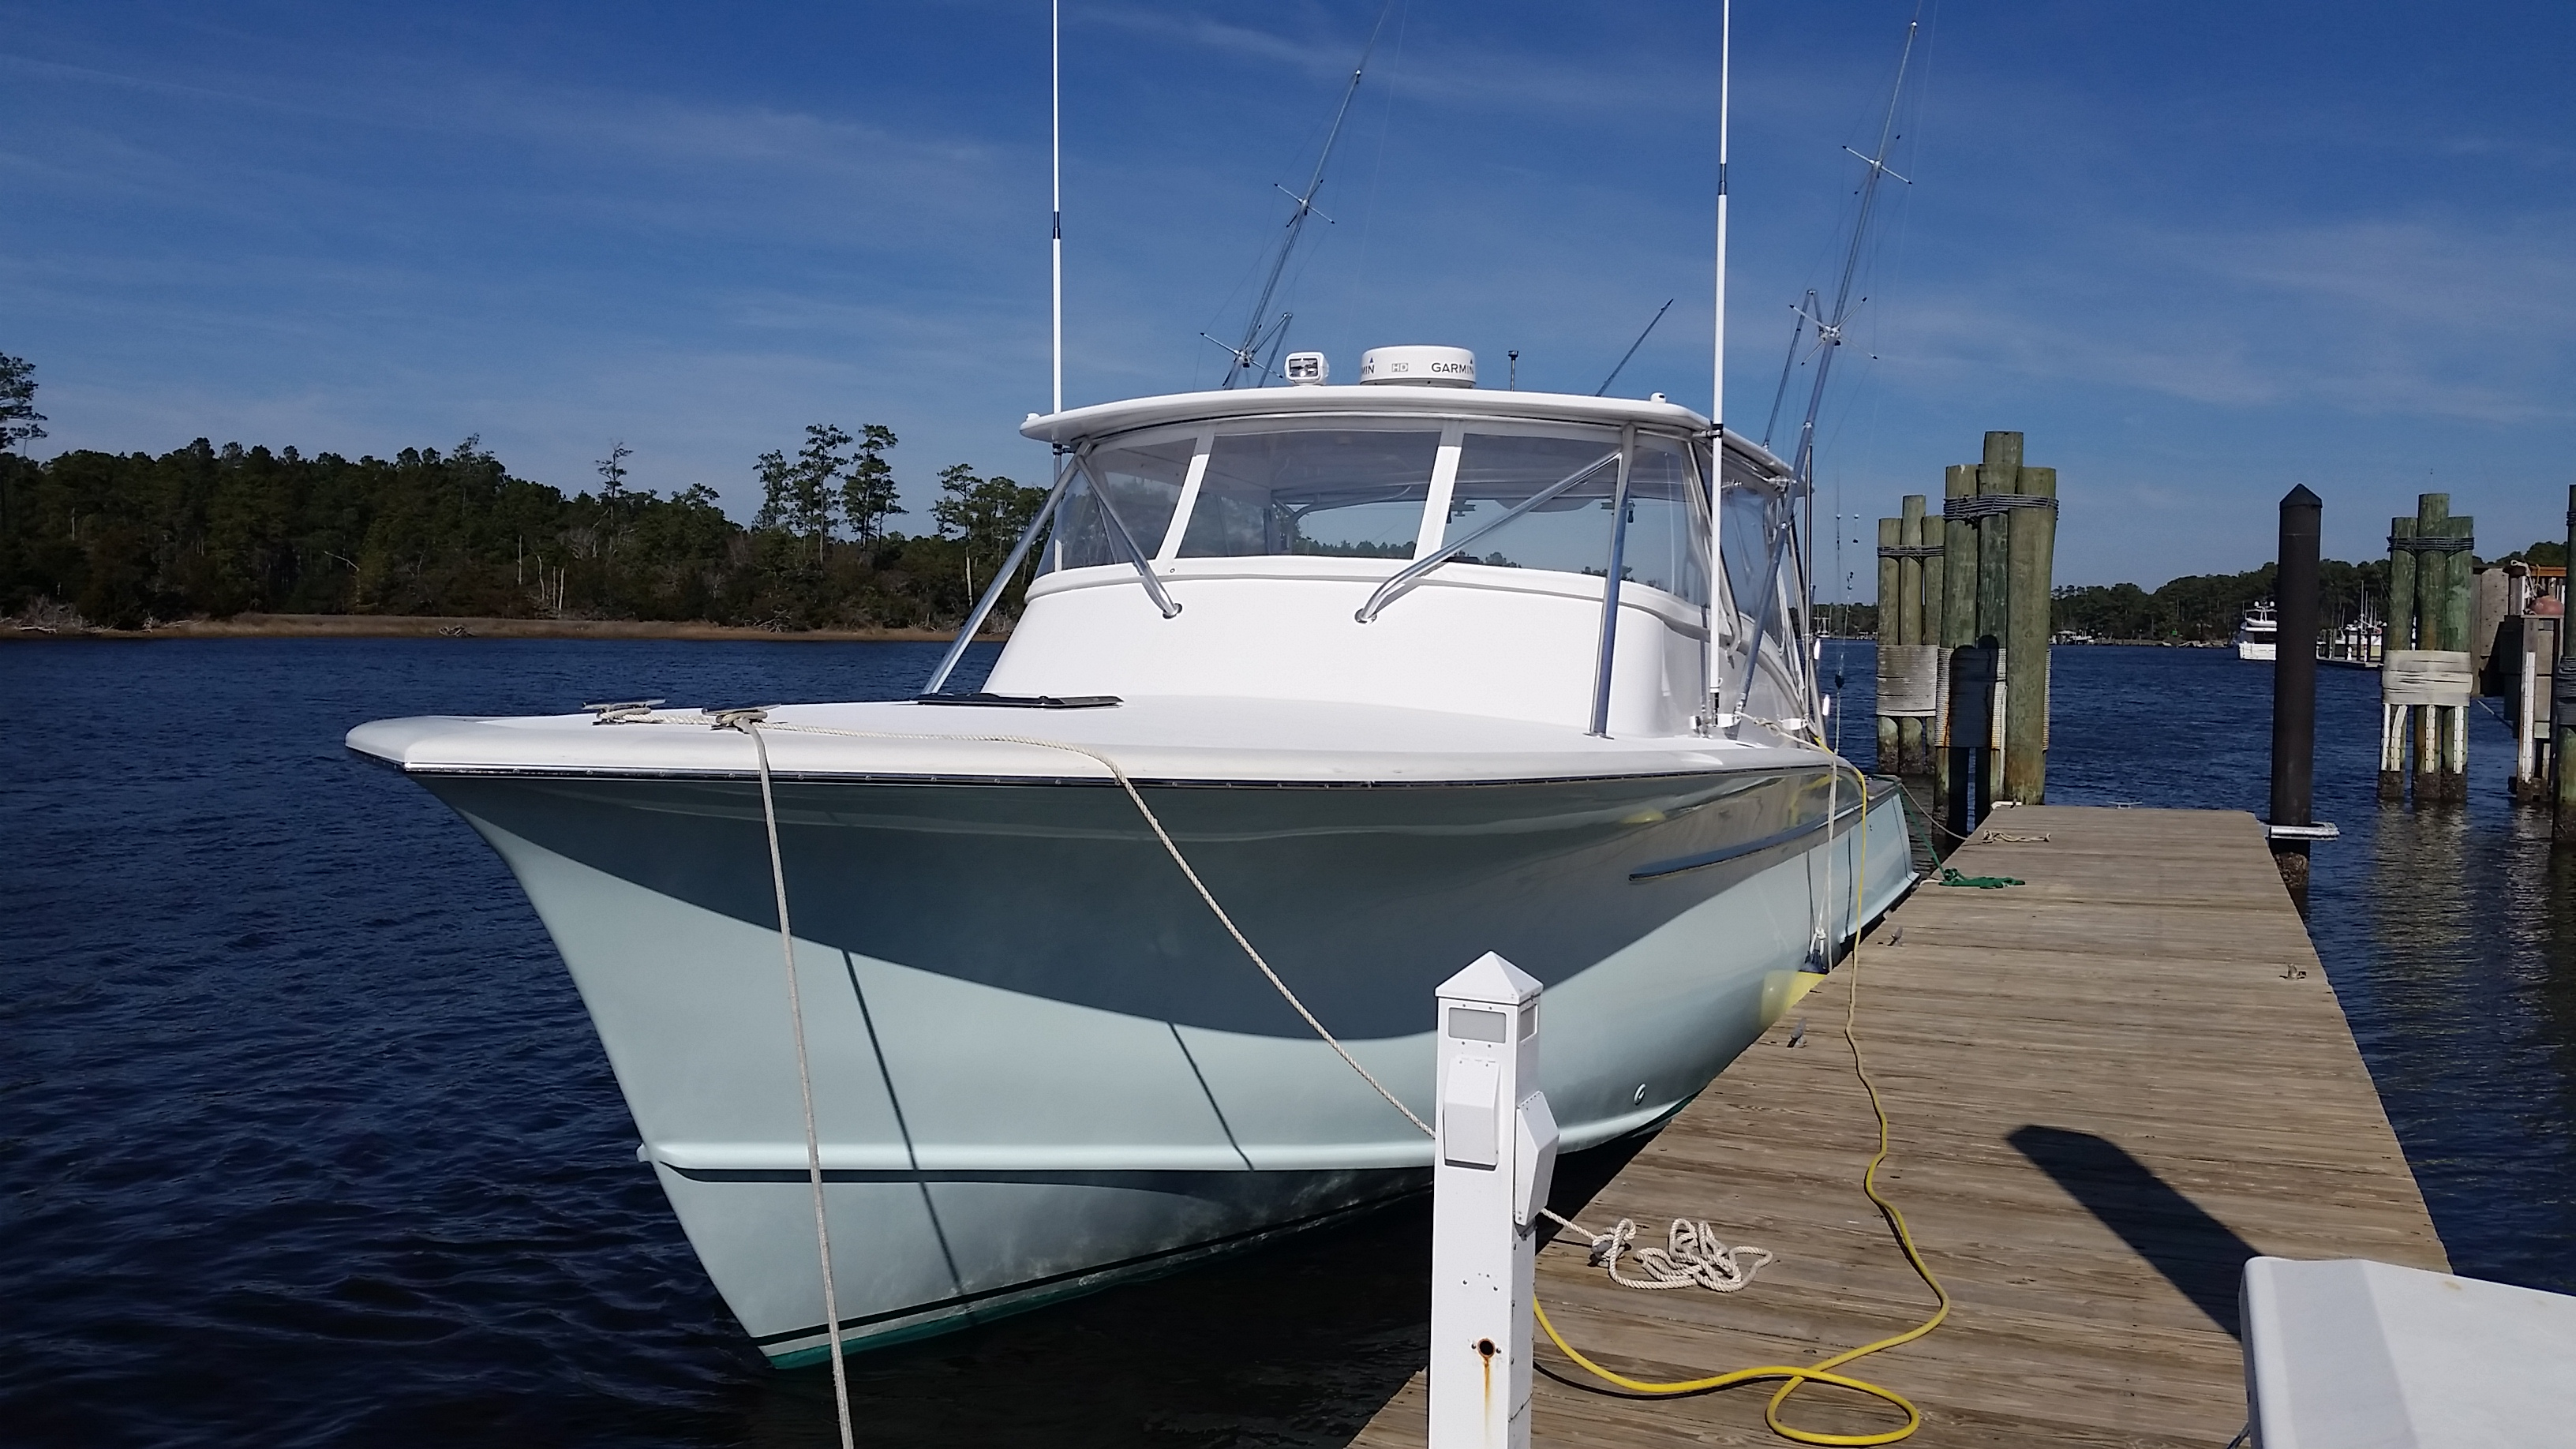 Custom Carolina Blackwell Express Sportfish 20180201_112748.jpg